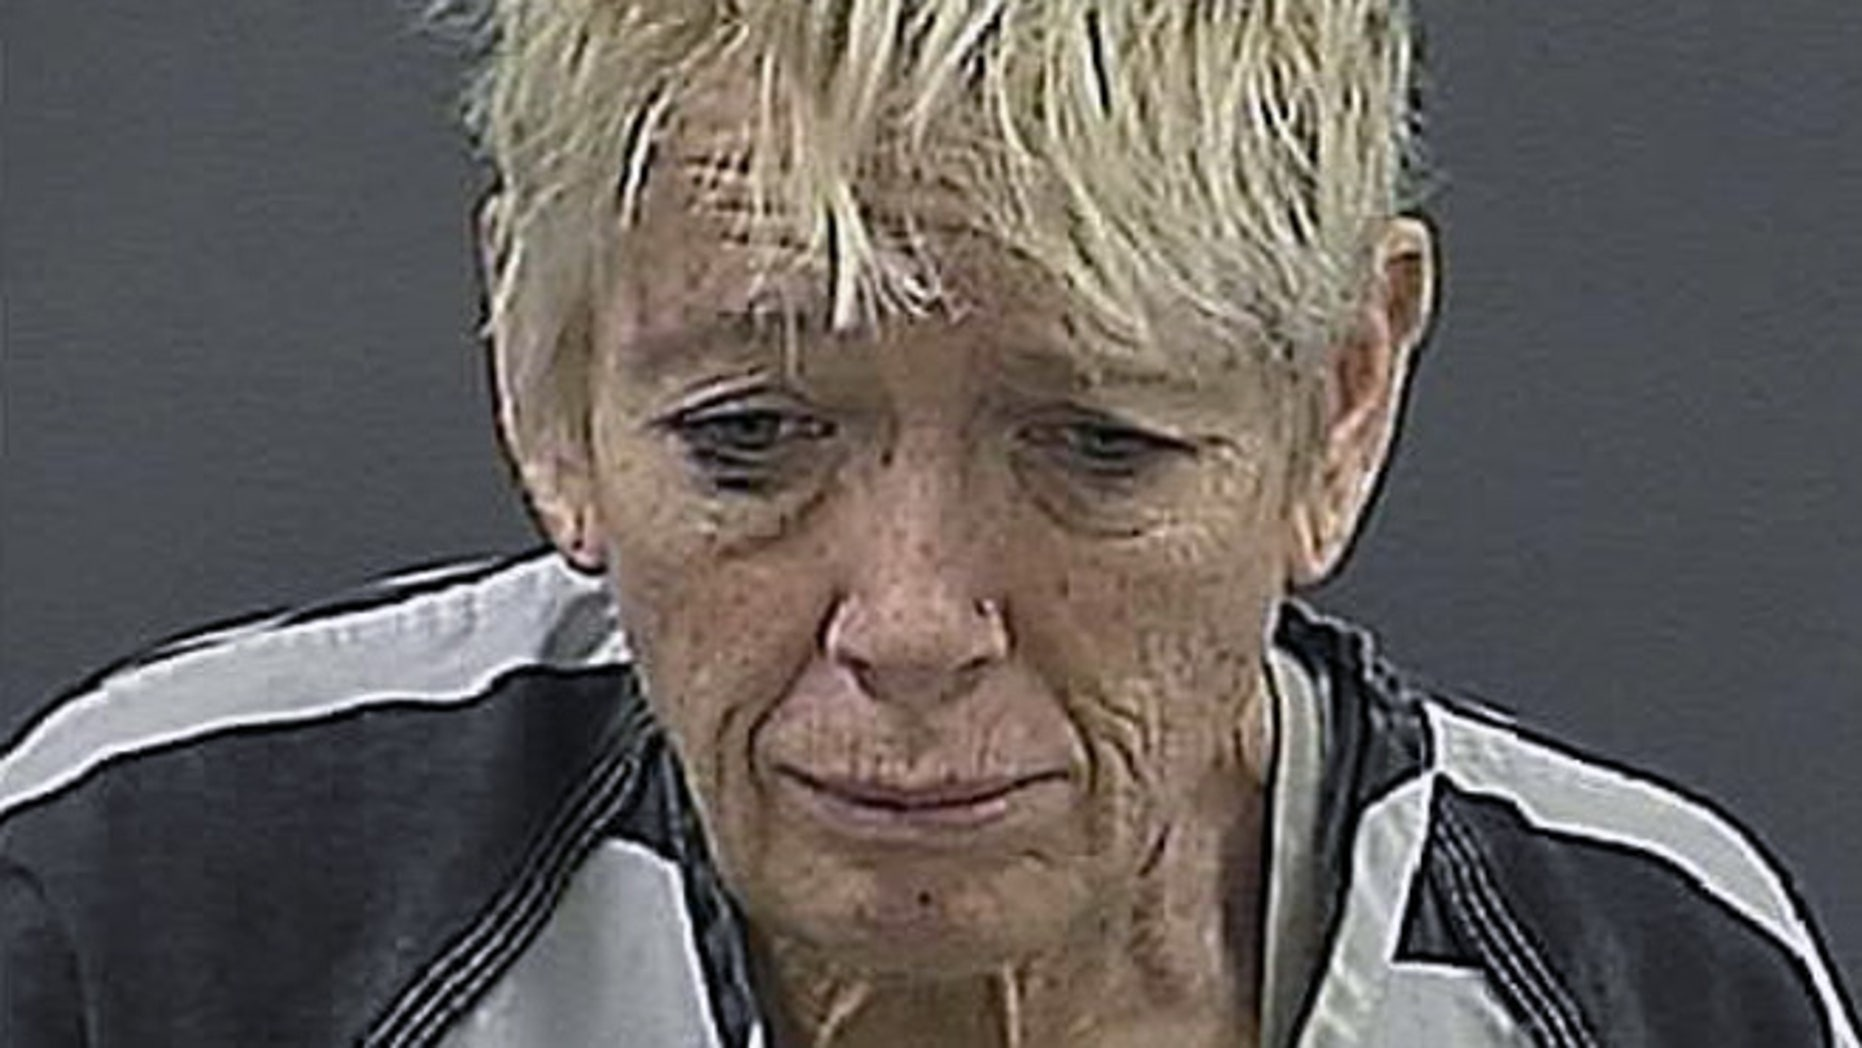 Cynthia Anderson sentenced to probation in drowning a 2-week-old puppy in a Nebraska airport bathroom.